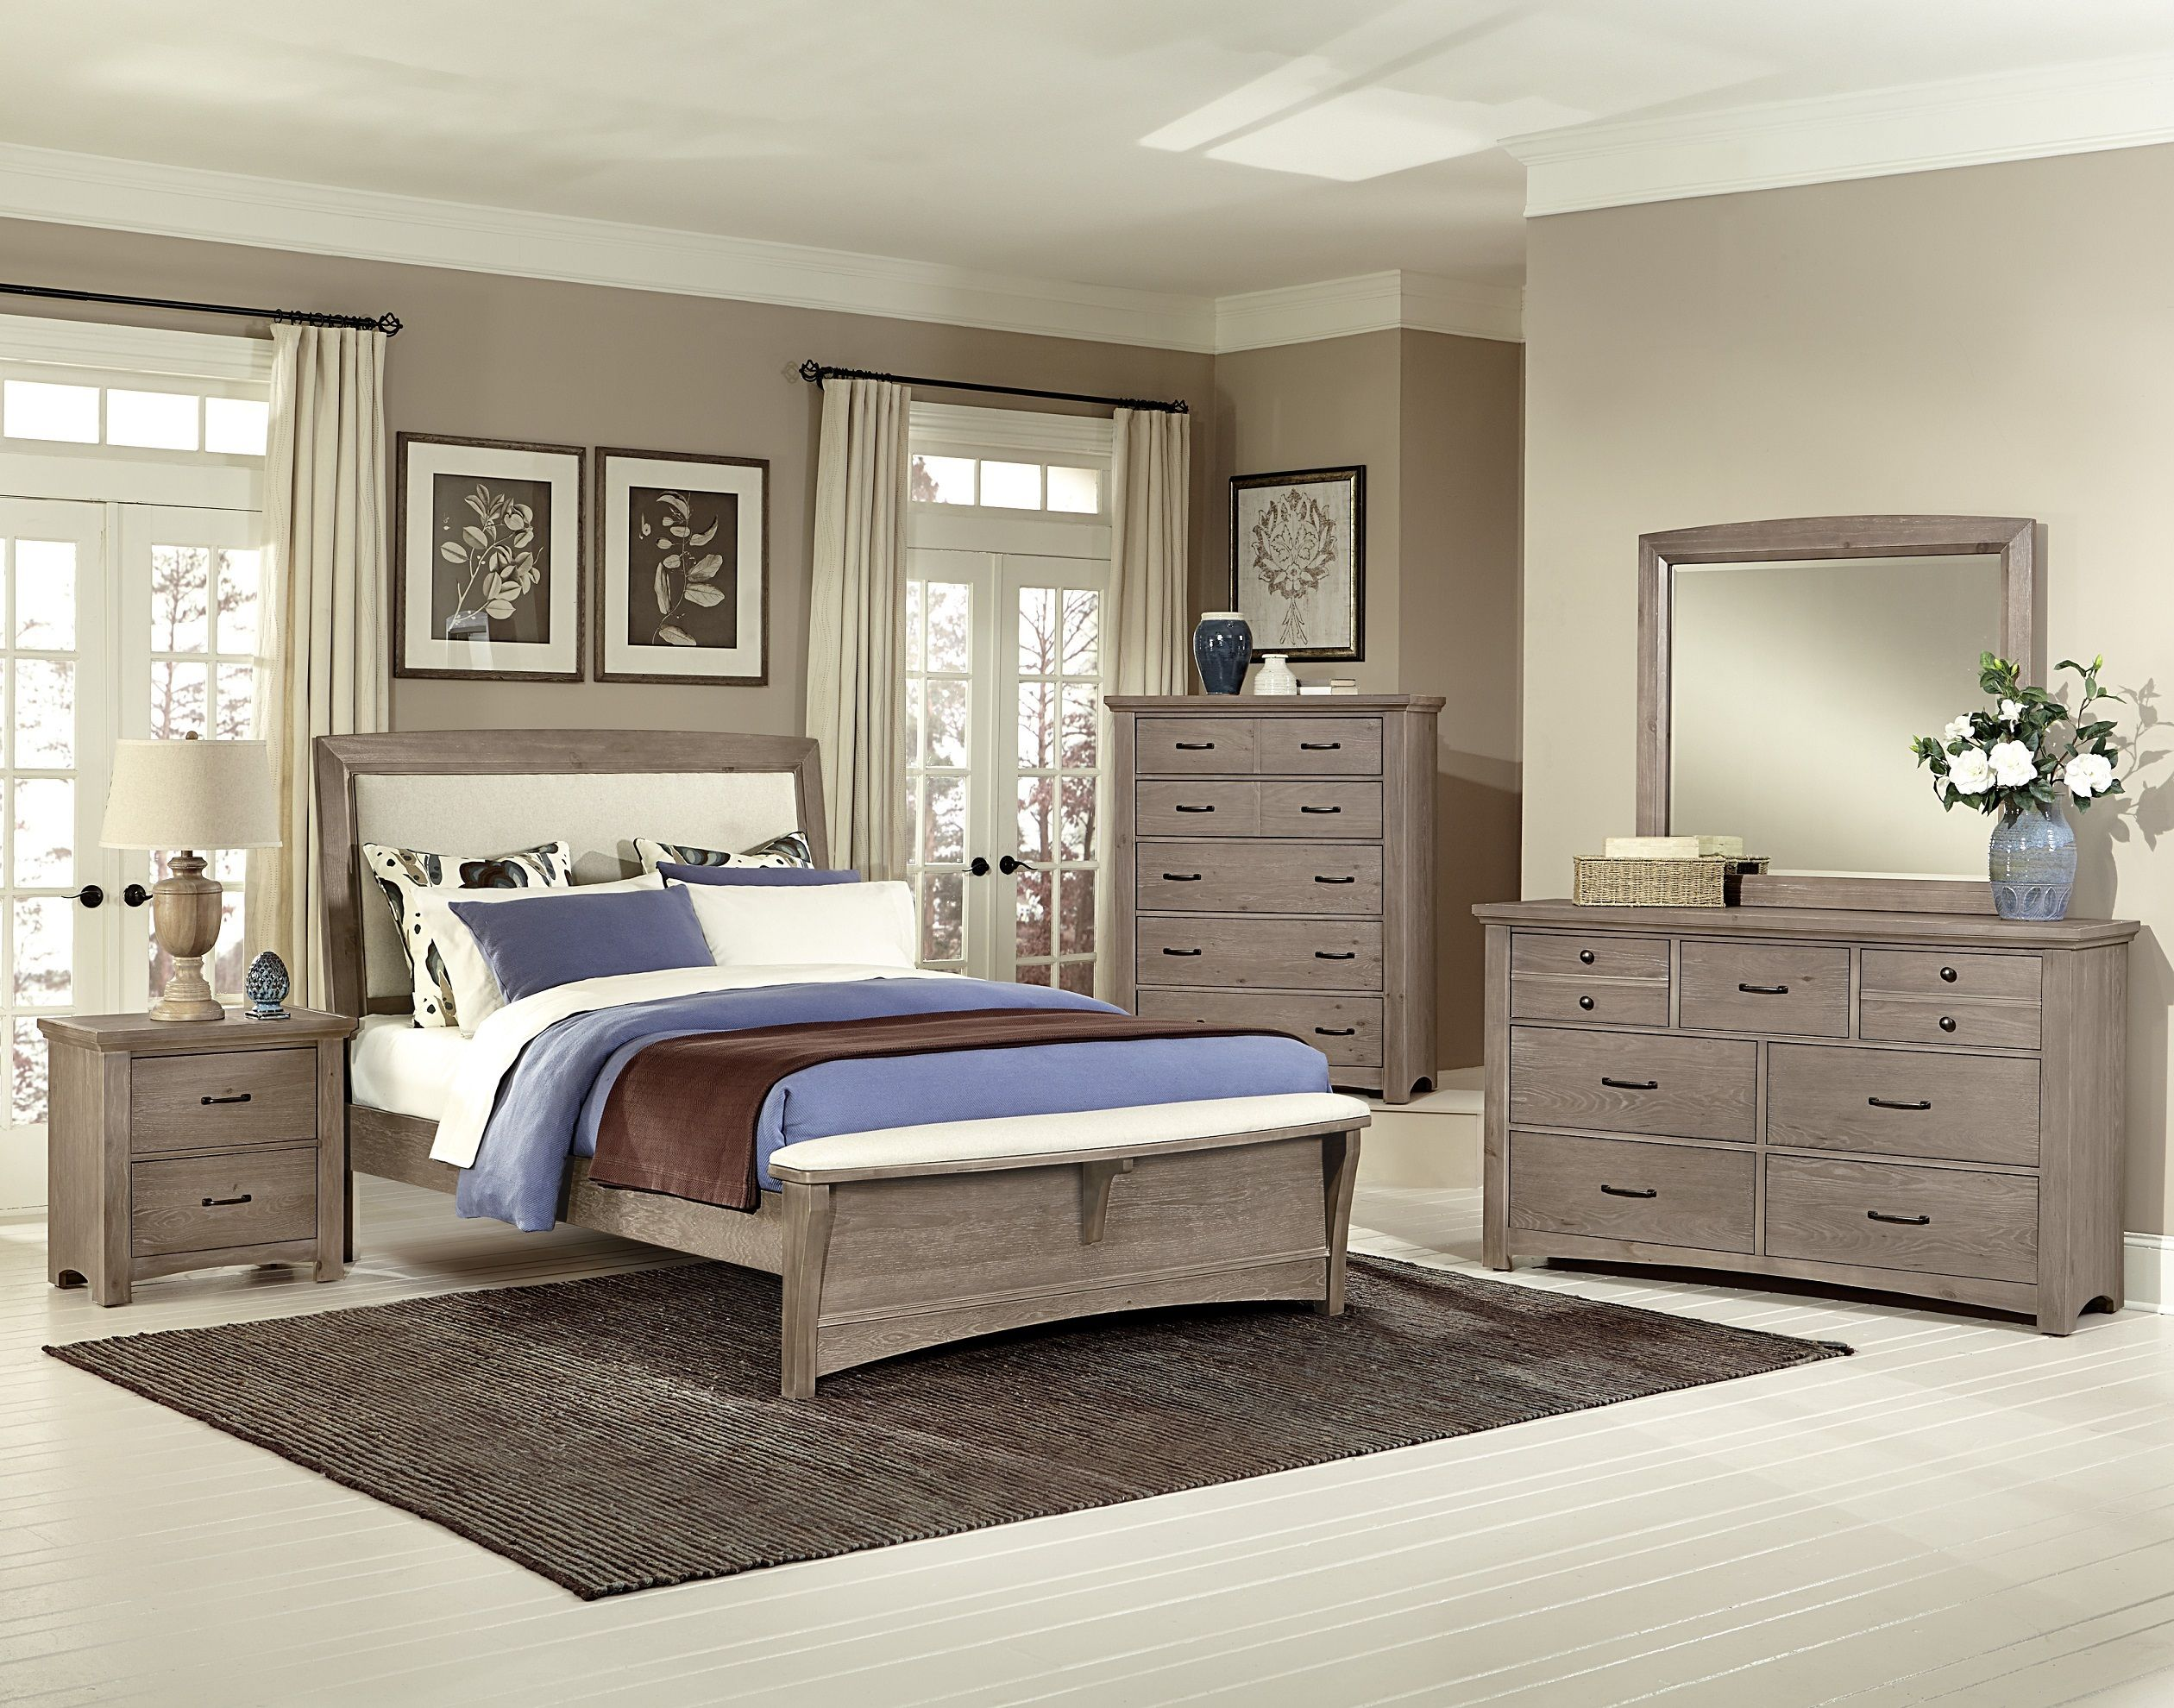 Exceptional Transitions Driftwood Oak Upholstered Bedroom Set | Vaughan Bassett | Home  Gallery Stores